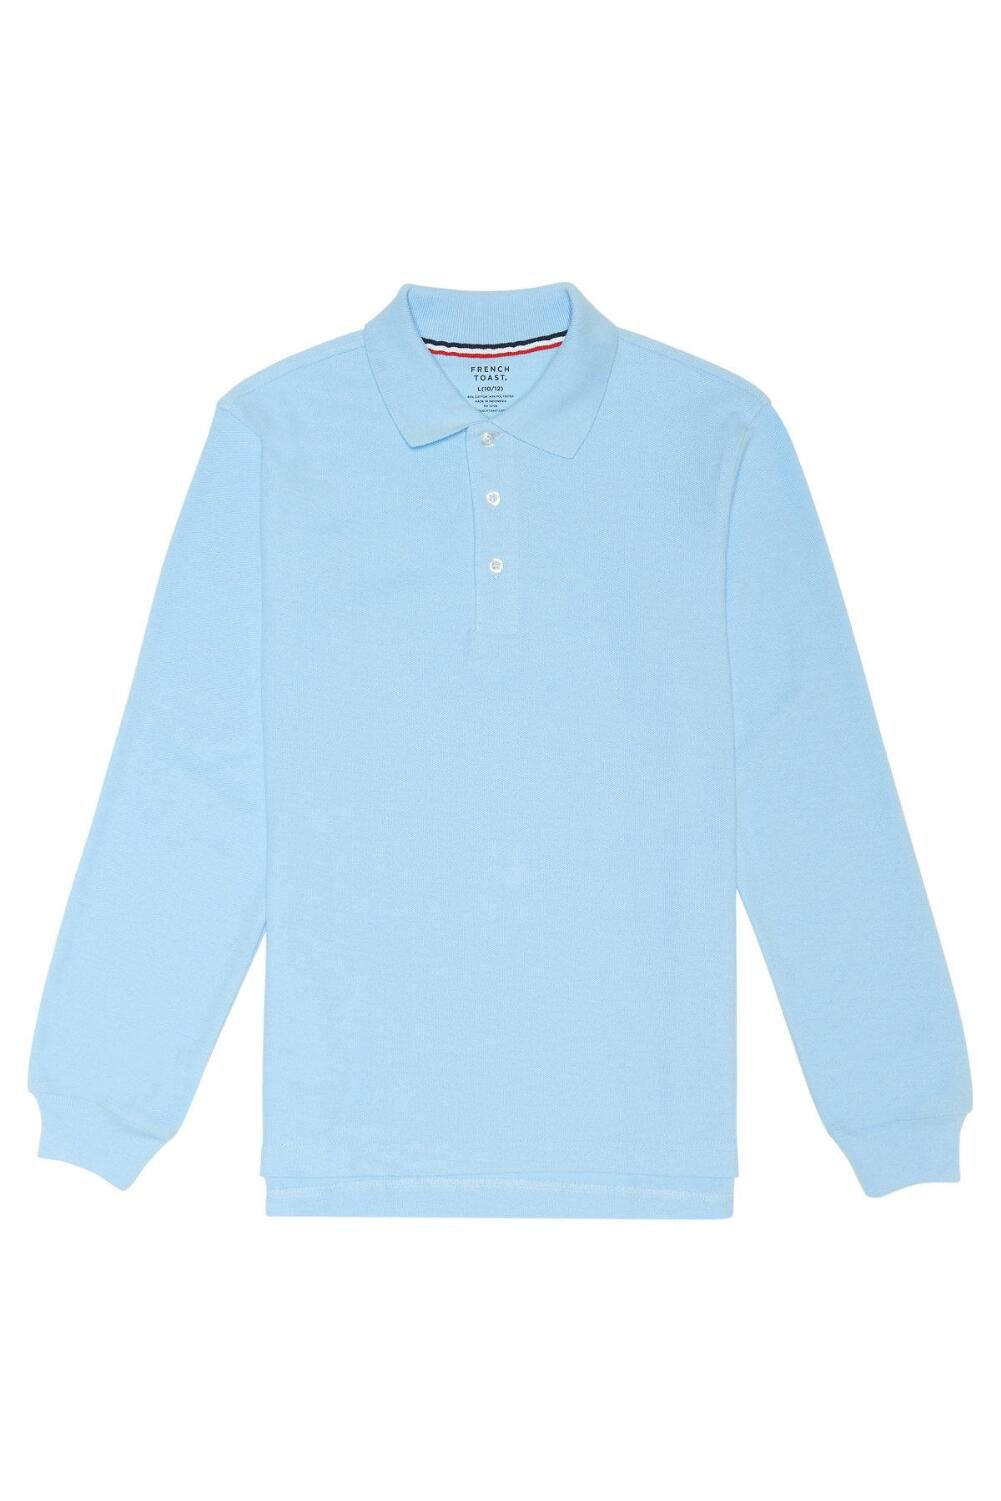 French Toast Boys' Long-Sleeve Pique Polo Shirt, Light Blue, Medium/10-12 Husky